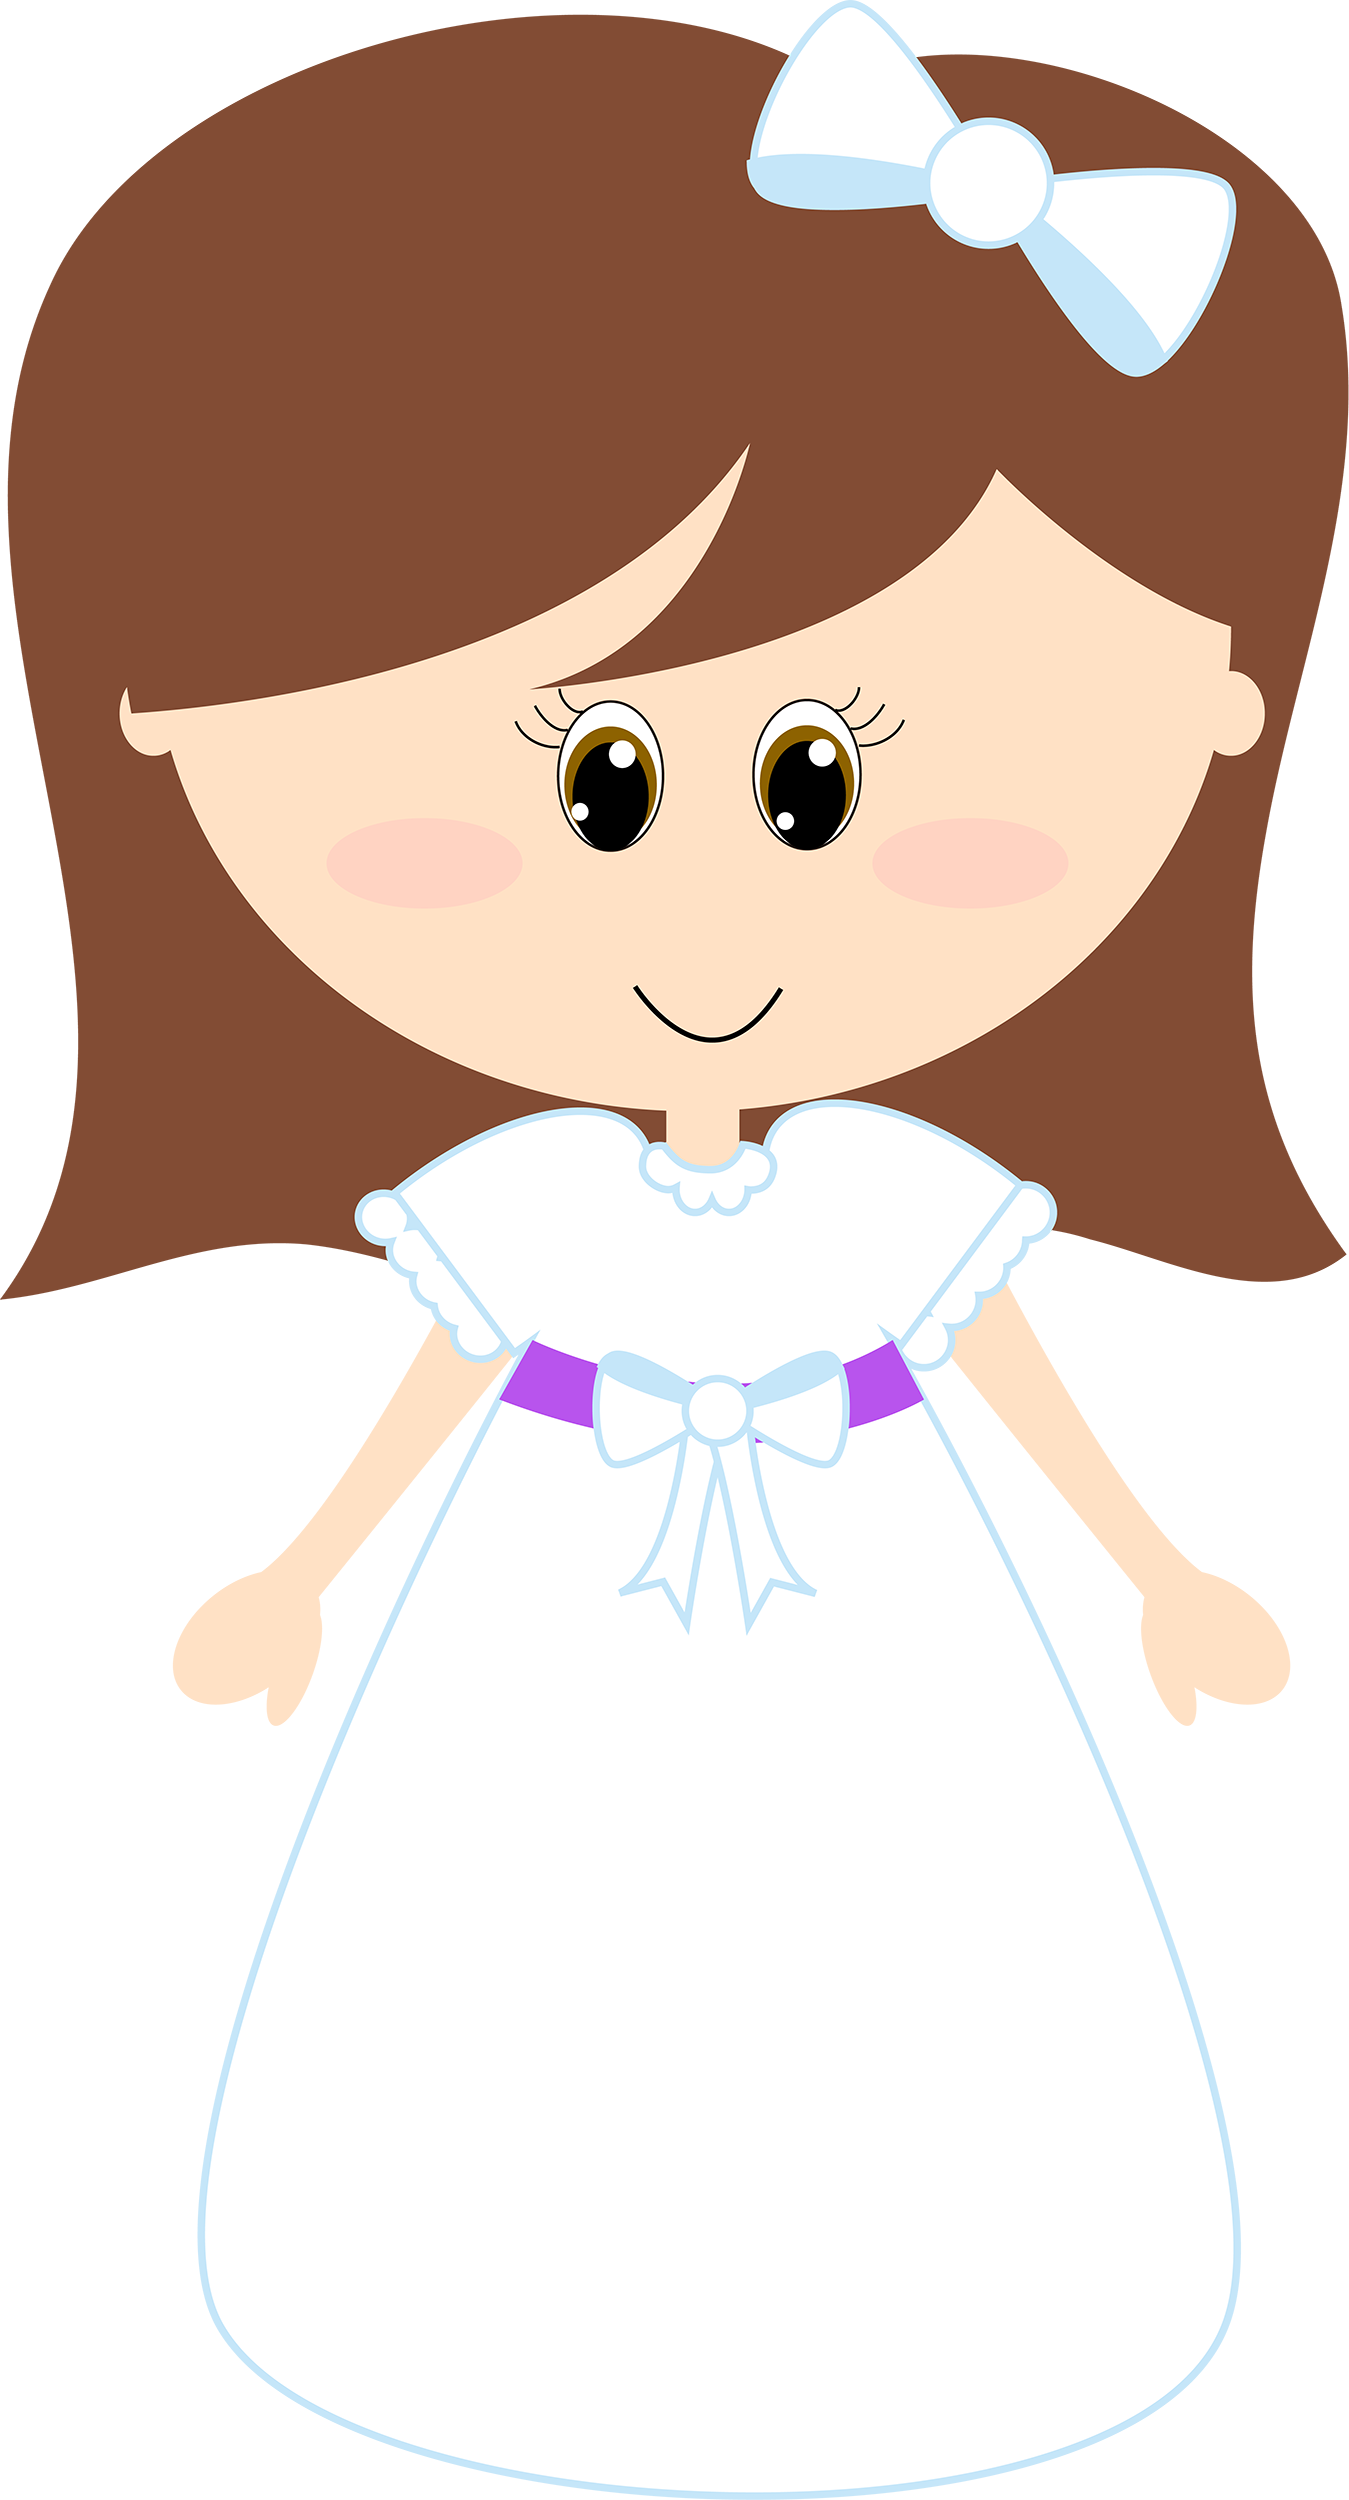 14 cliparts for free. Download Communion clipart backgrounds.